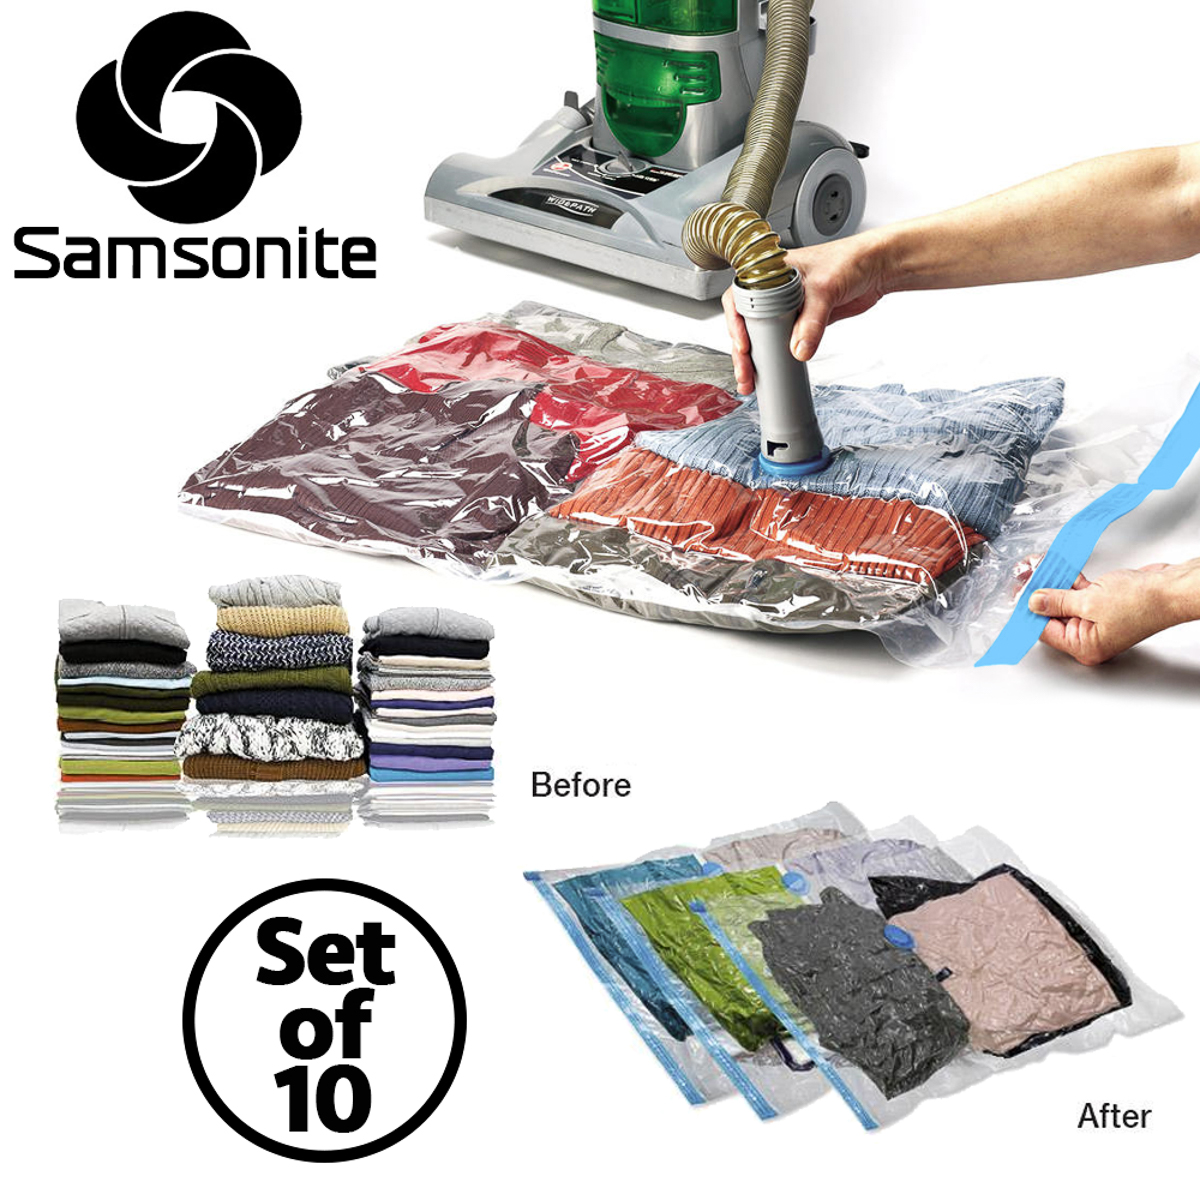 10pc Samsonite Vacuum Storage Bags Set Compress Protect Organize Clothes Bedding